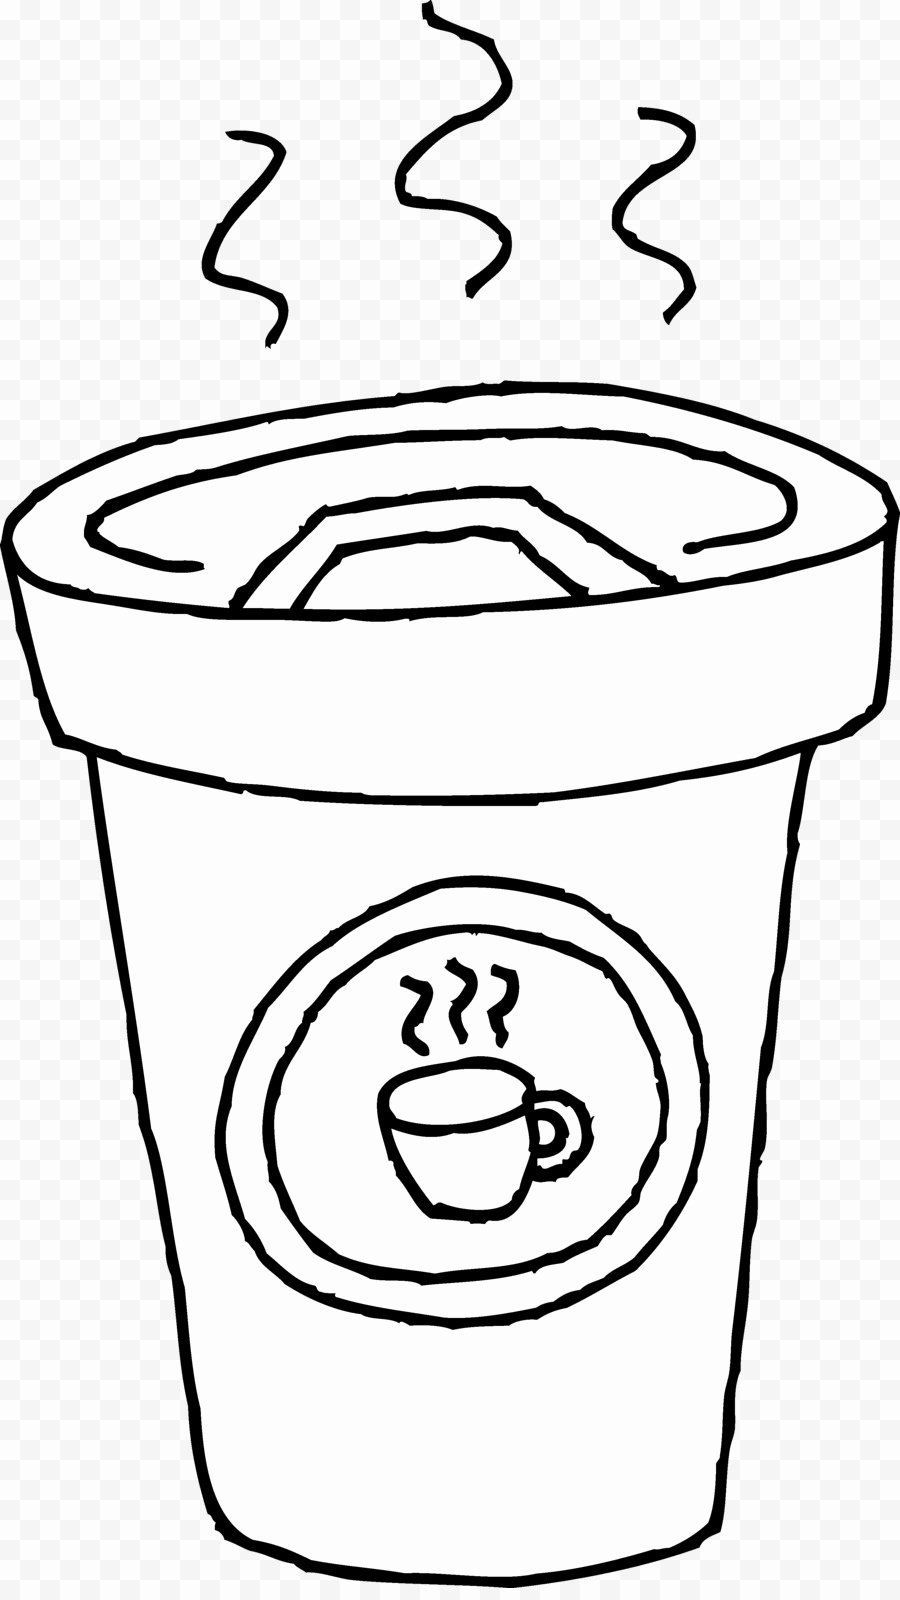 Cute Starbucks Coloring Pages Luxury Cup Tea Clipart Black